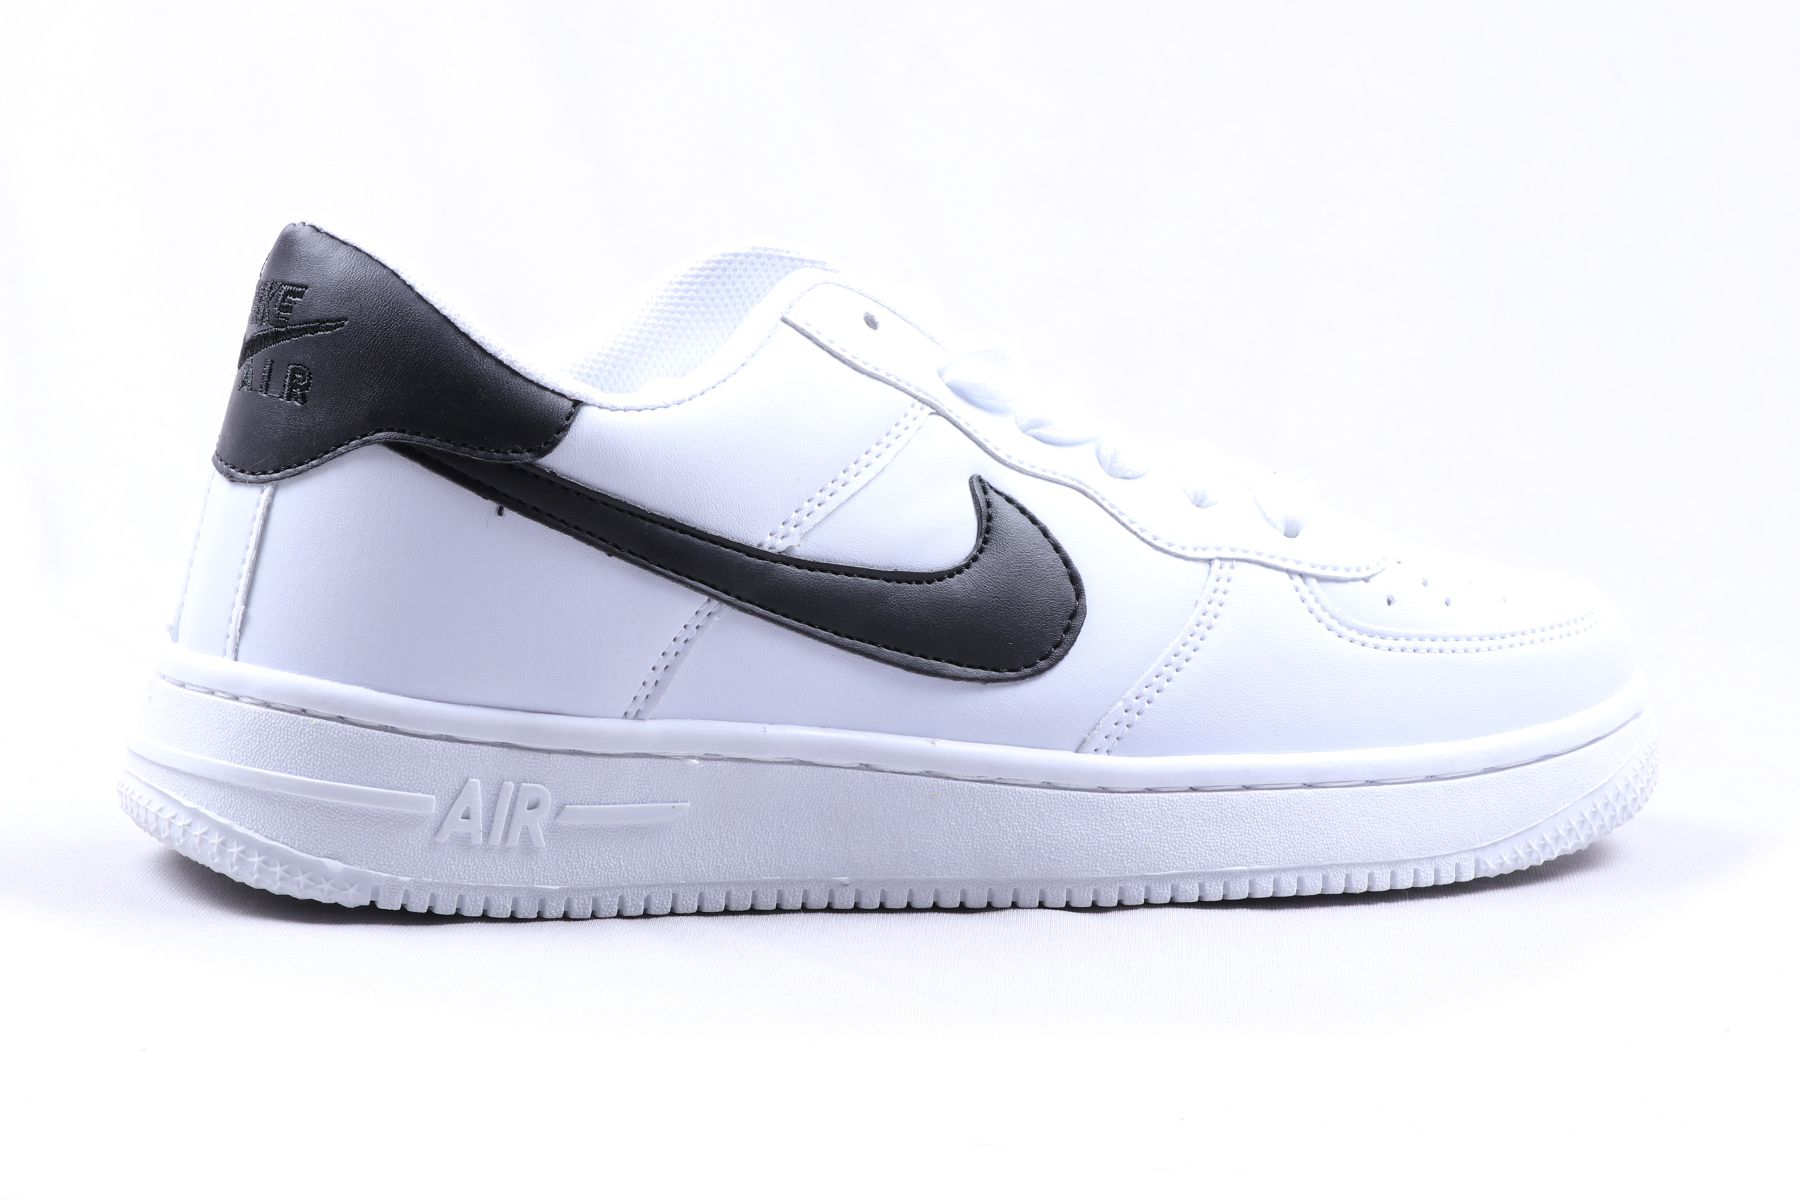 Nike Air Force 1 LOW ID Sneakers White Casual Shoes - Buy Nike Air ... fd6aeb644